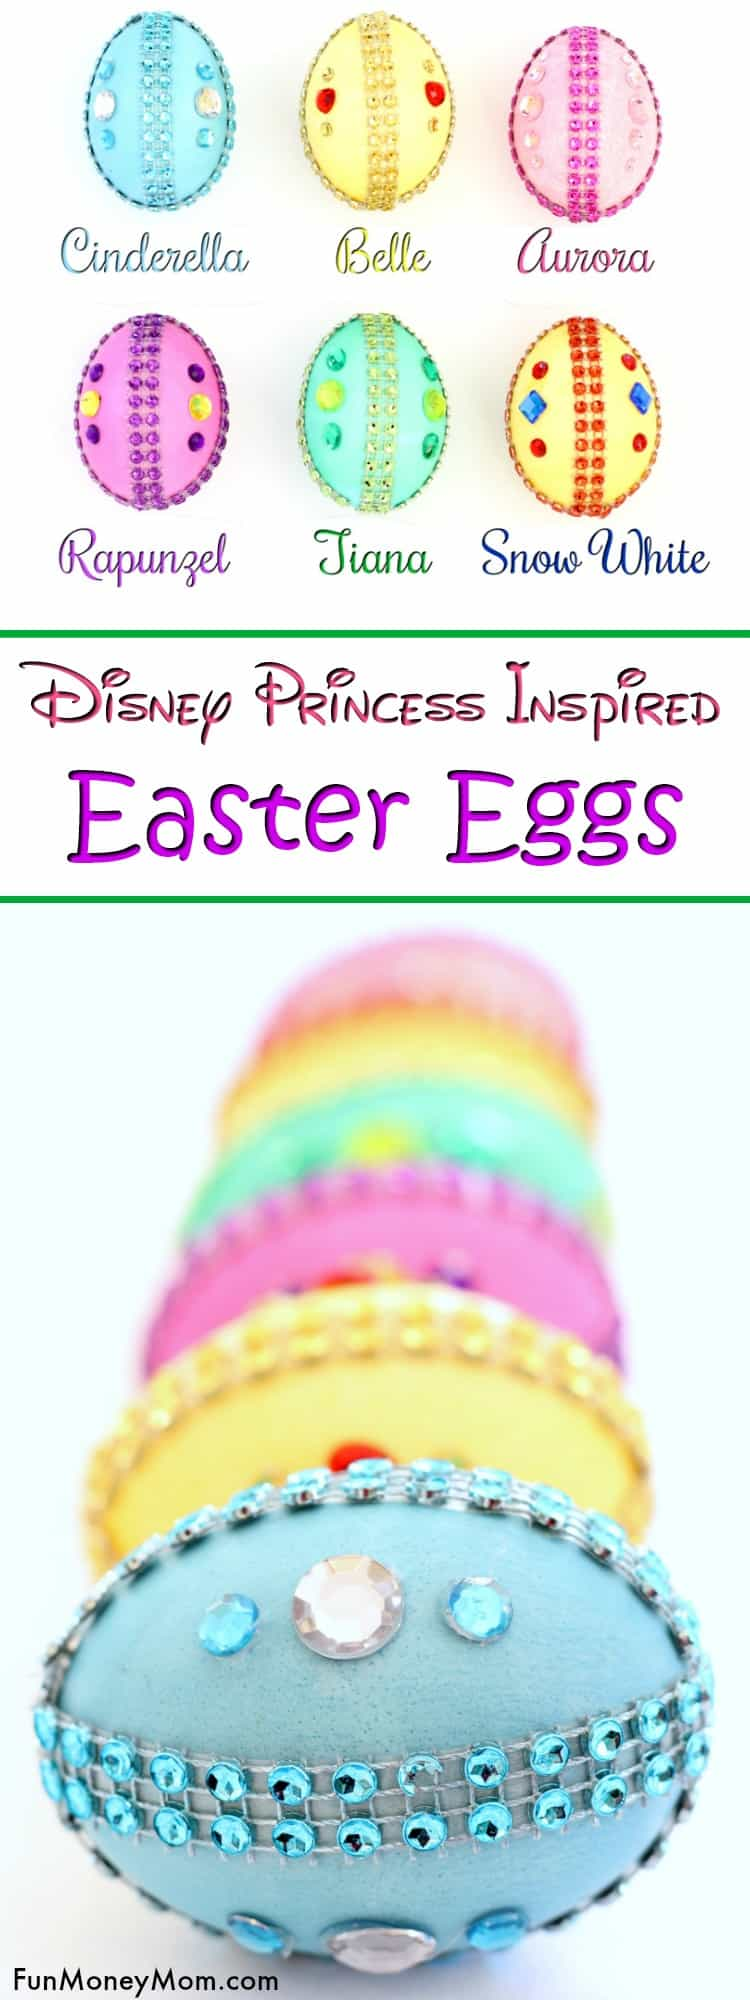 Disney Princess Easter Eggs - Planning on decorating Easter eggs for the holidays? These pretty Easter egg decorating ideas are perfect. If your kids are Disney Princess fans, they'll really love making their own princess inspired jeweled Easter eggs! #eastereggs #princesseggs #eastercraft #eastereggdecorating